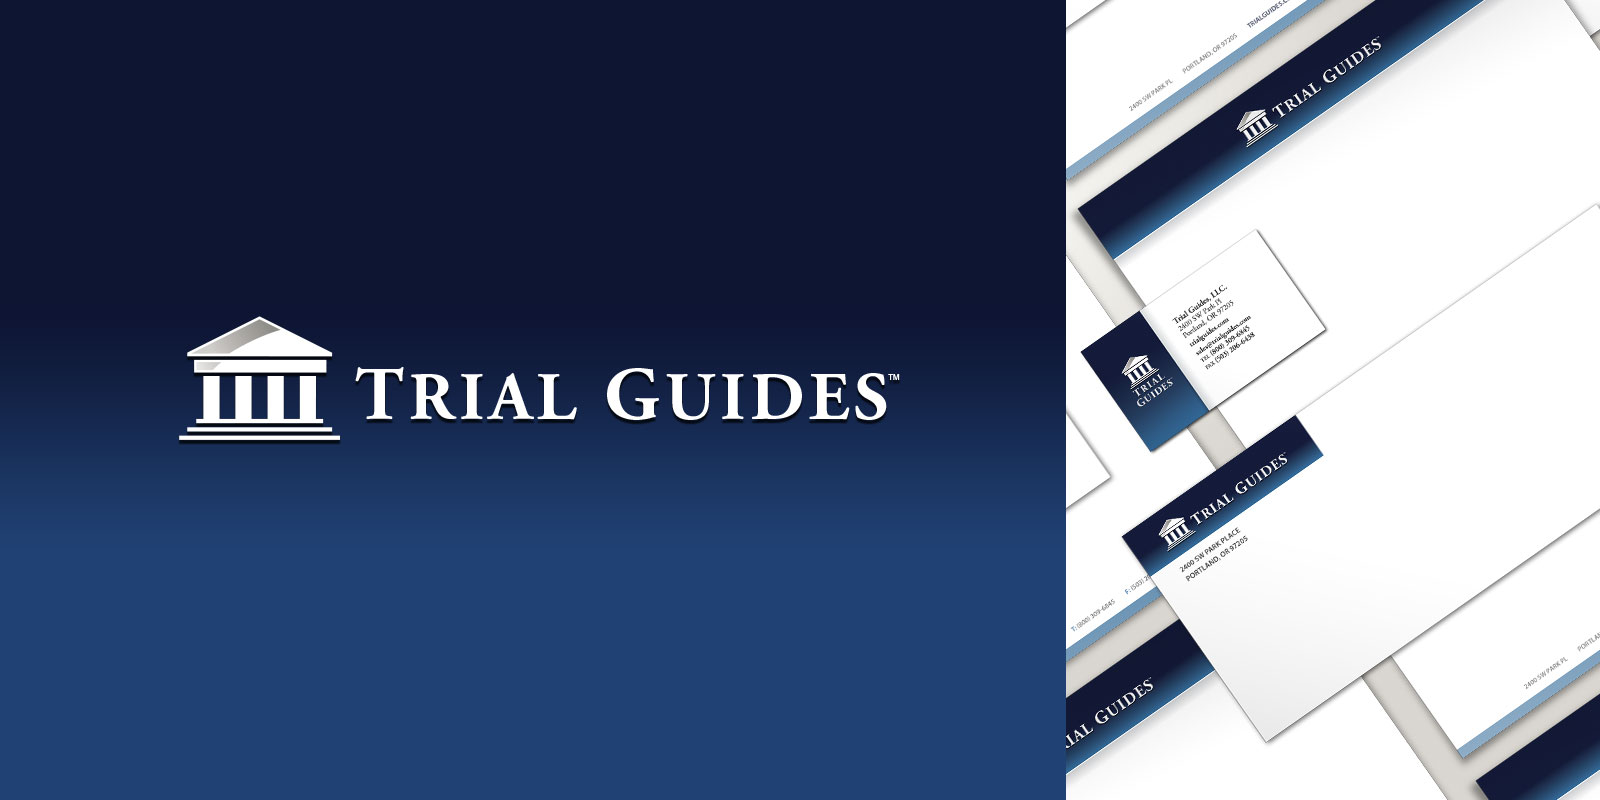 Trial Guides branding